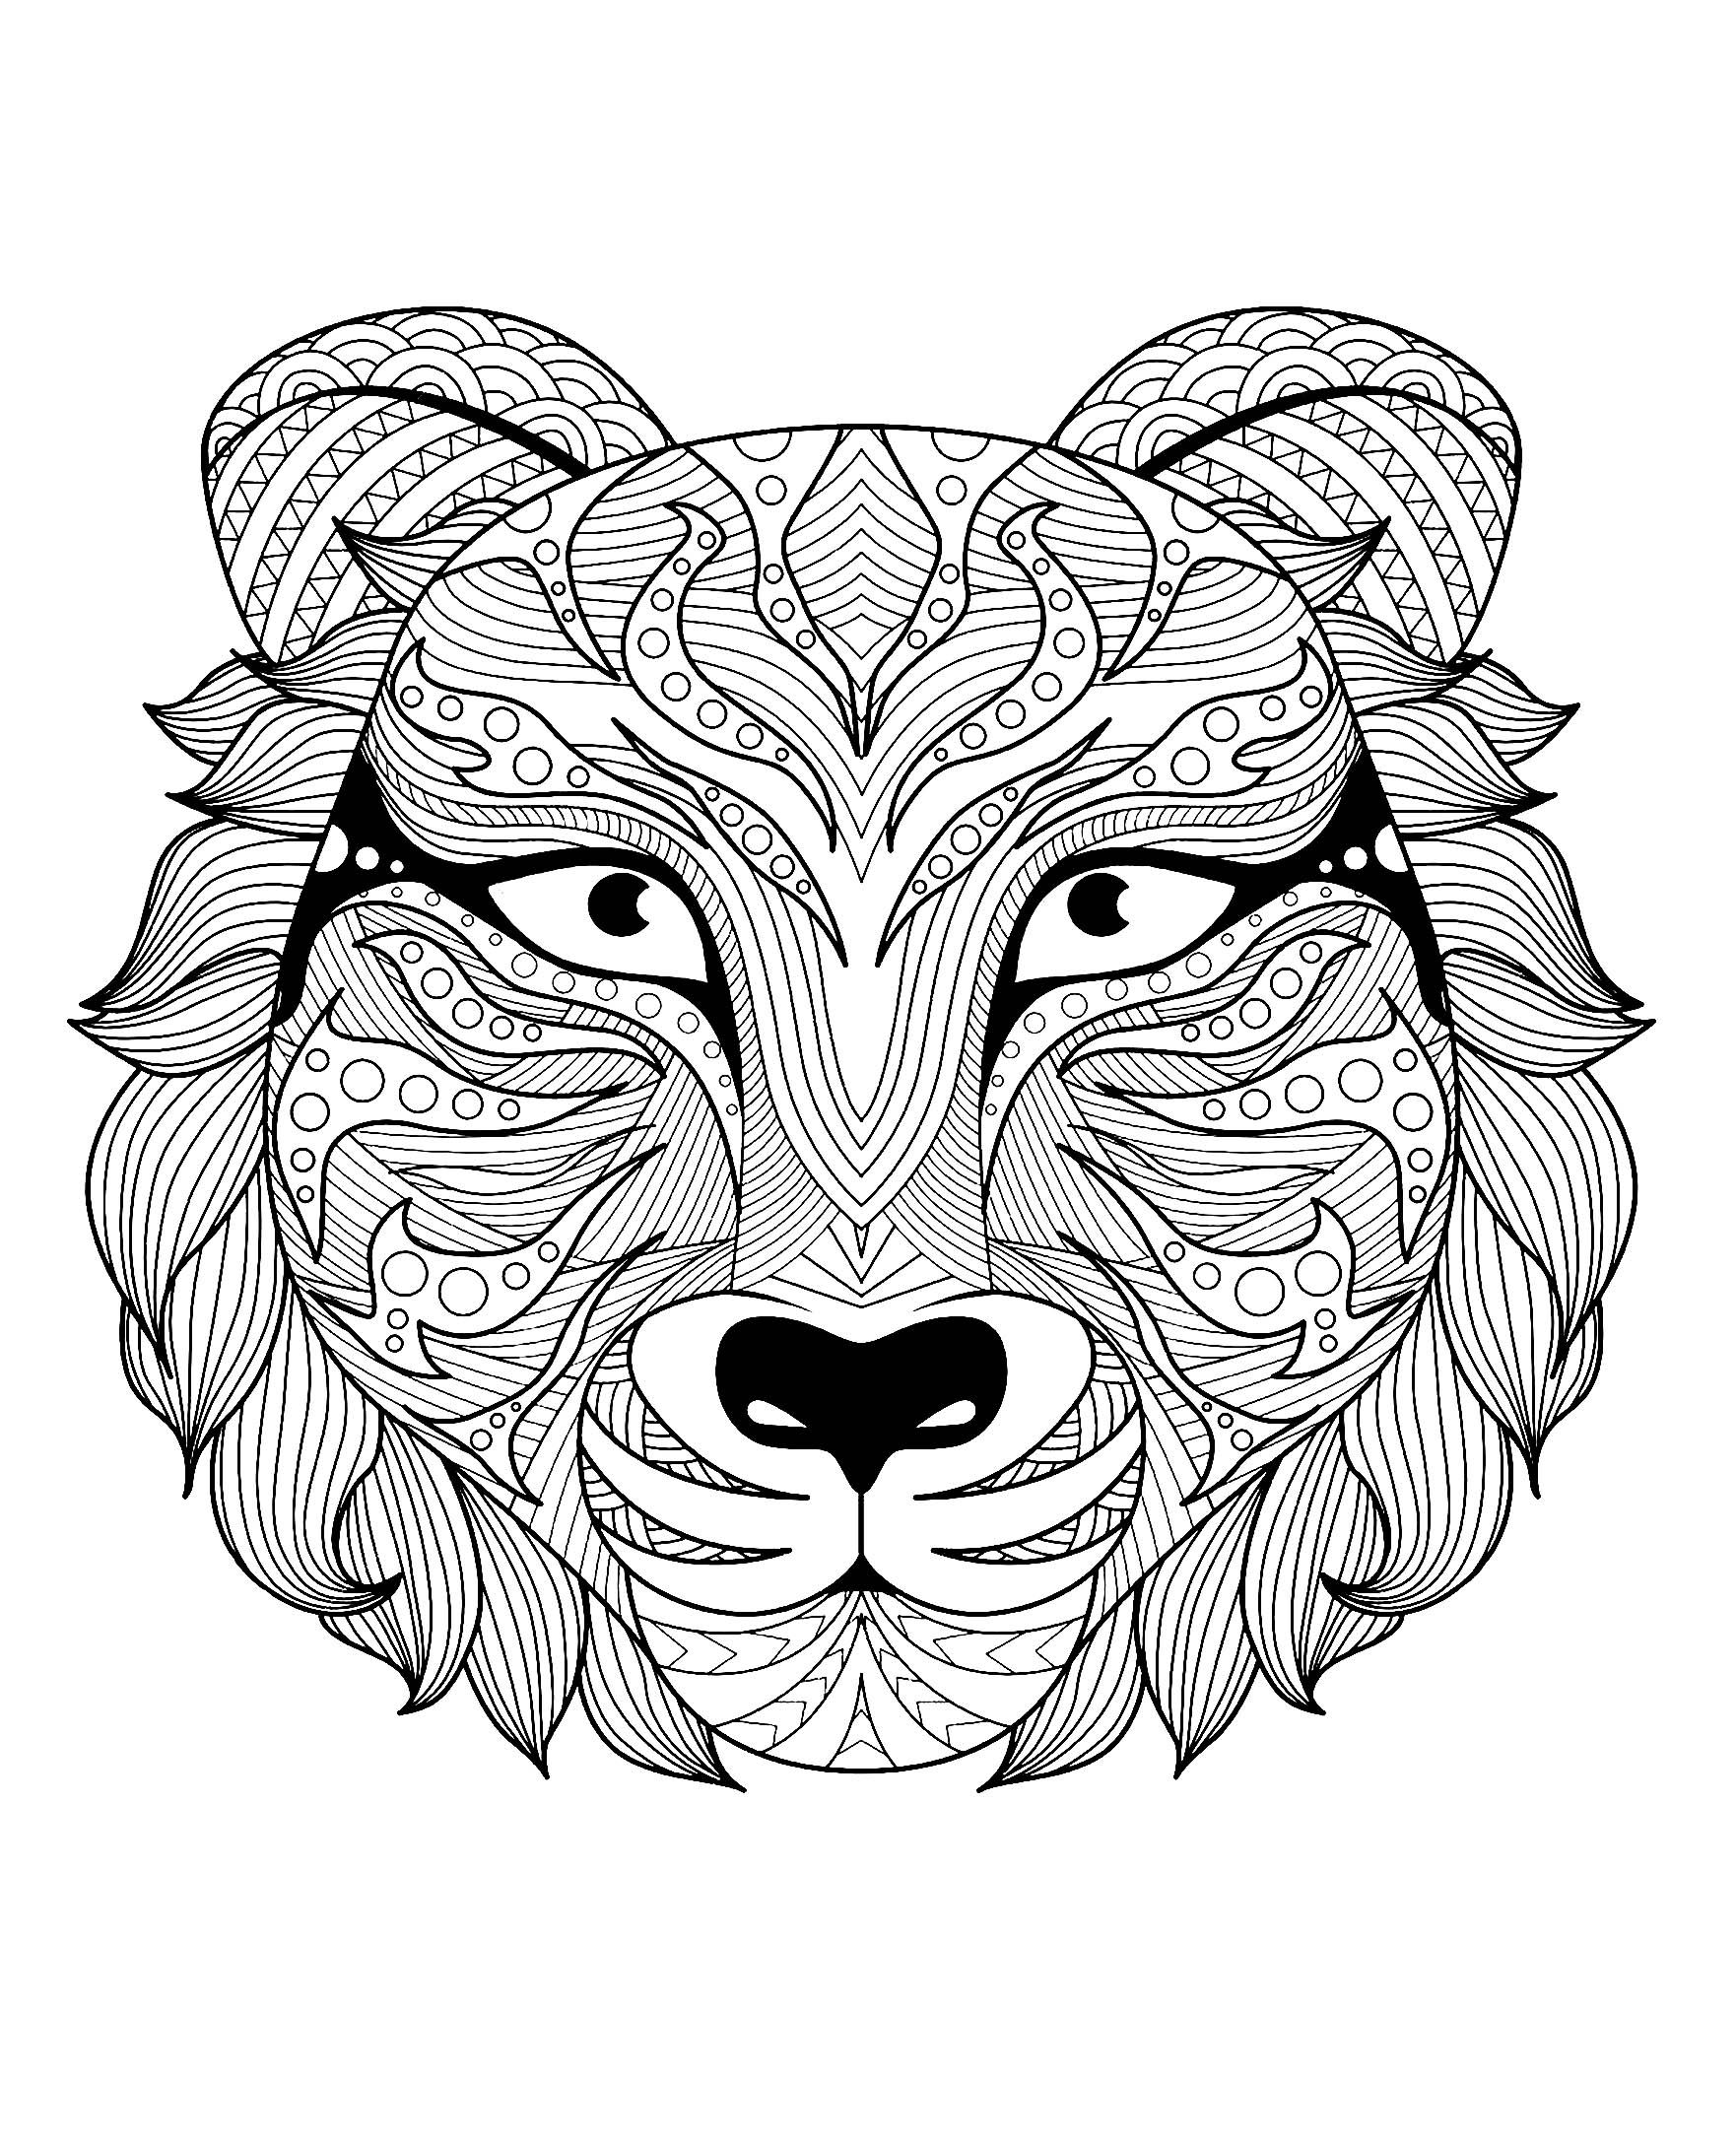 Tiger Head Magnificent Tiger Head From The Gallery Tigers Artist Bimdeedee Source 123 Animal Coloring Pages Mandala Coloring Pages Mandala Coloring